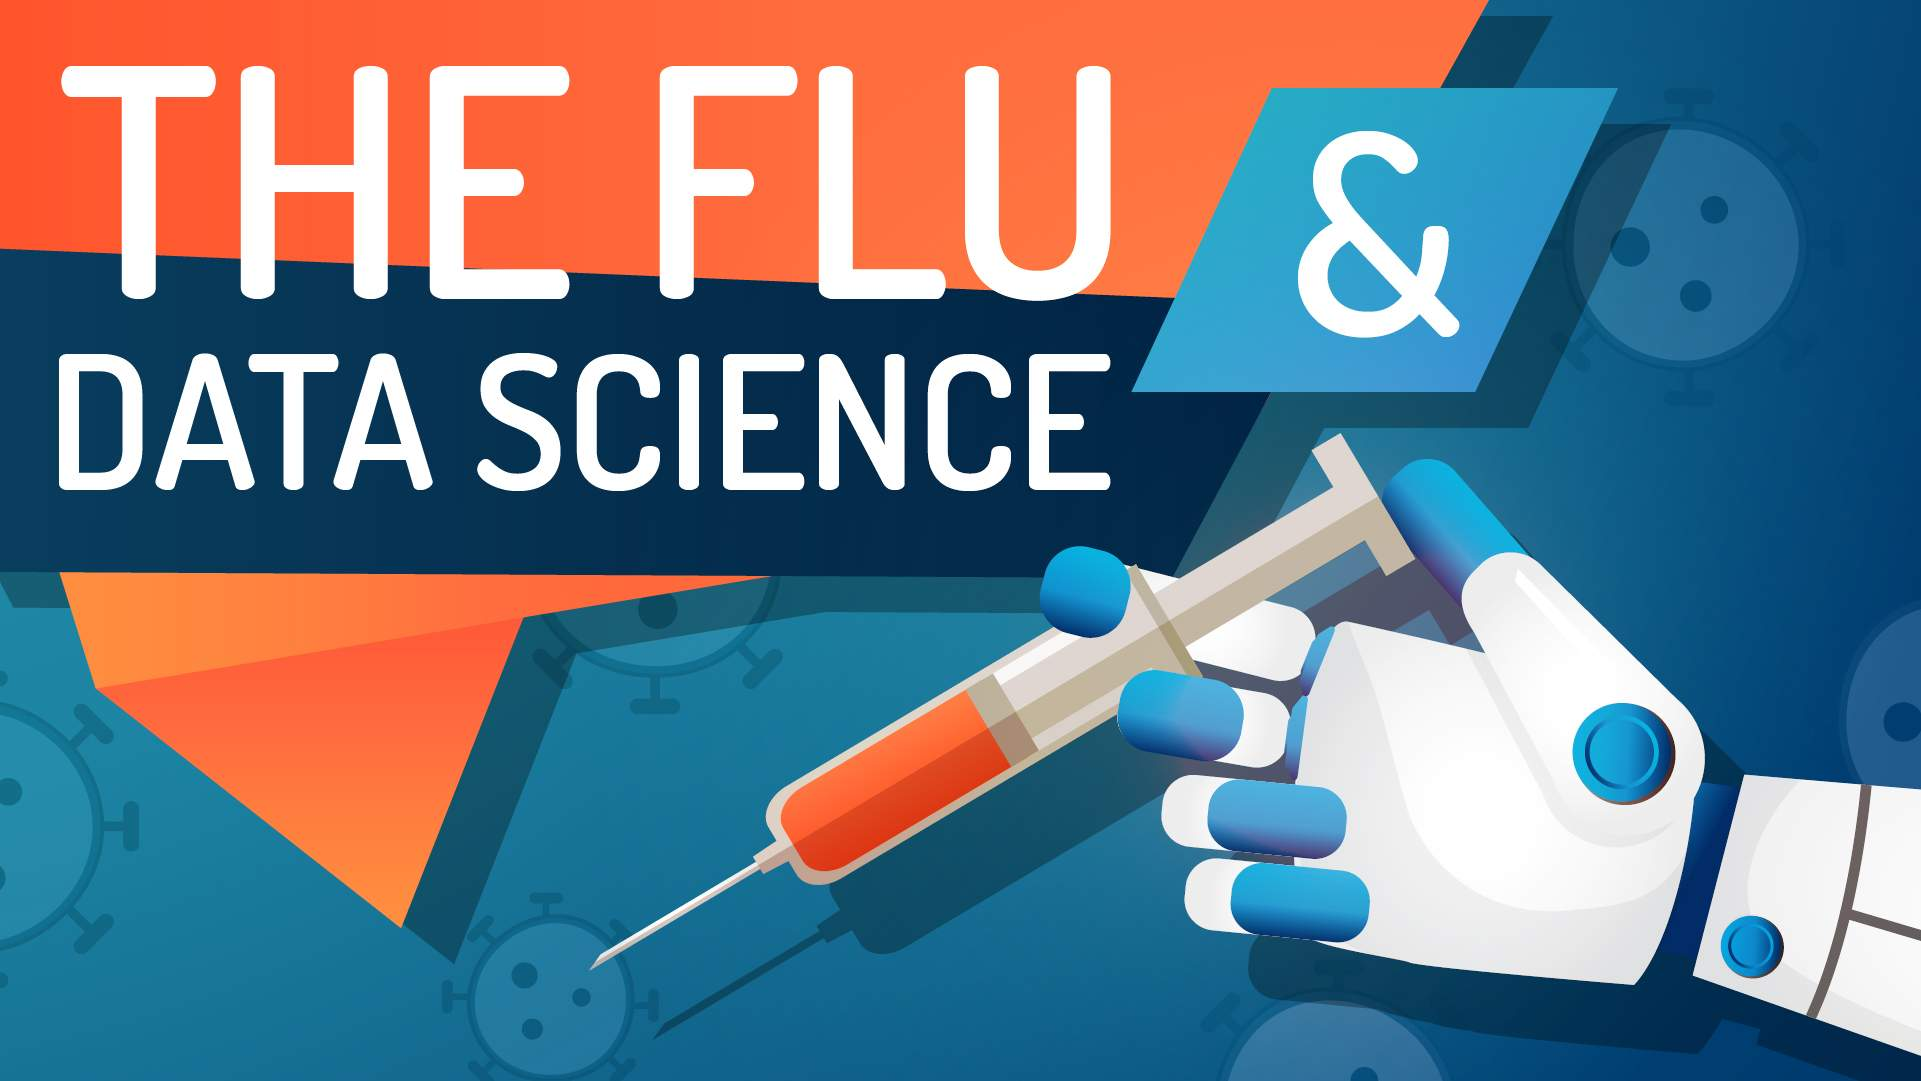 Influenza Vaccines: The Data Science Behind Them